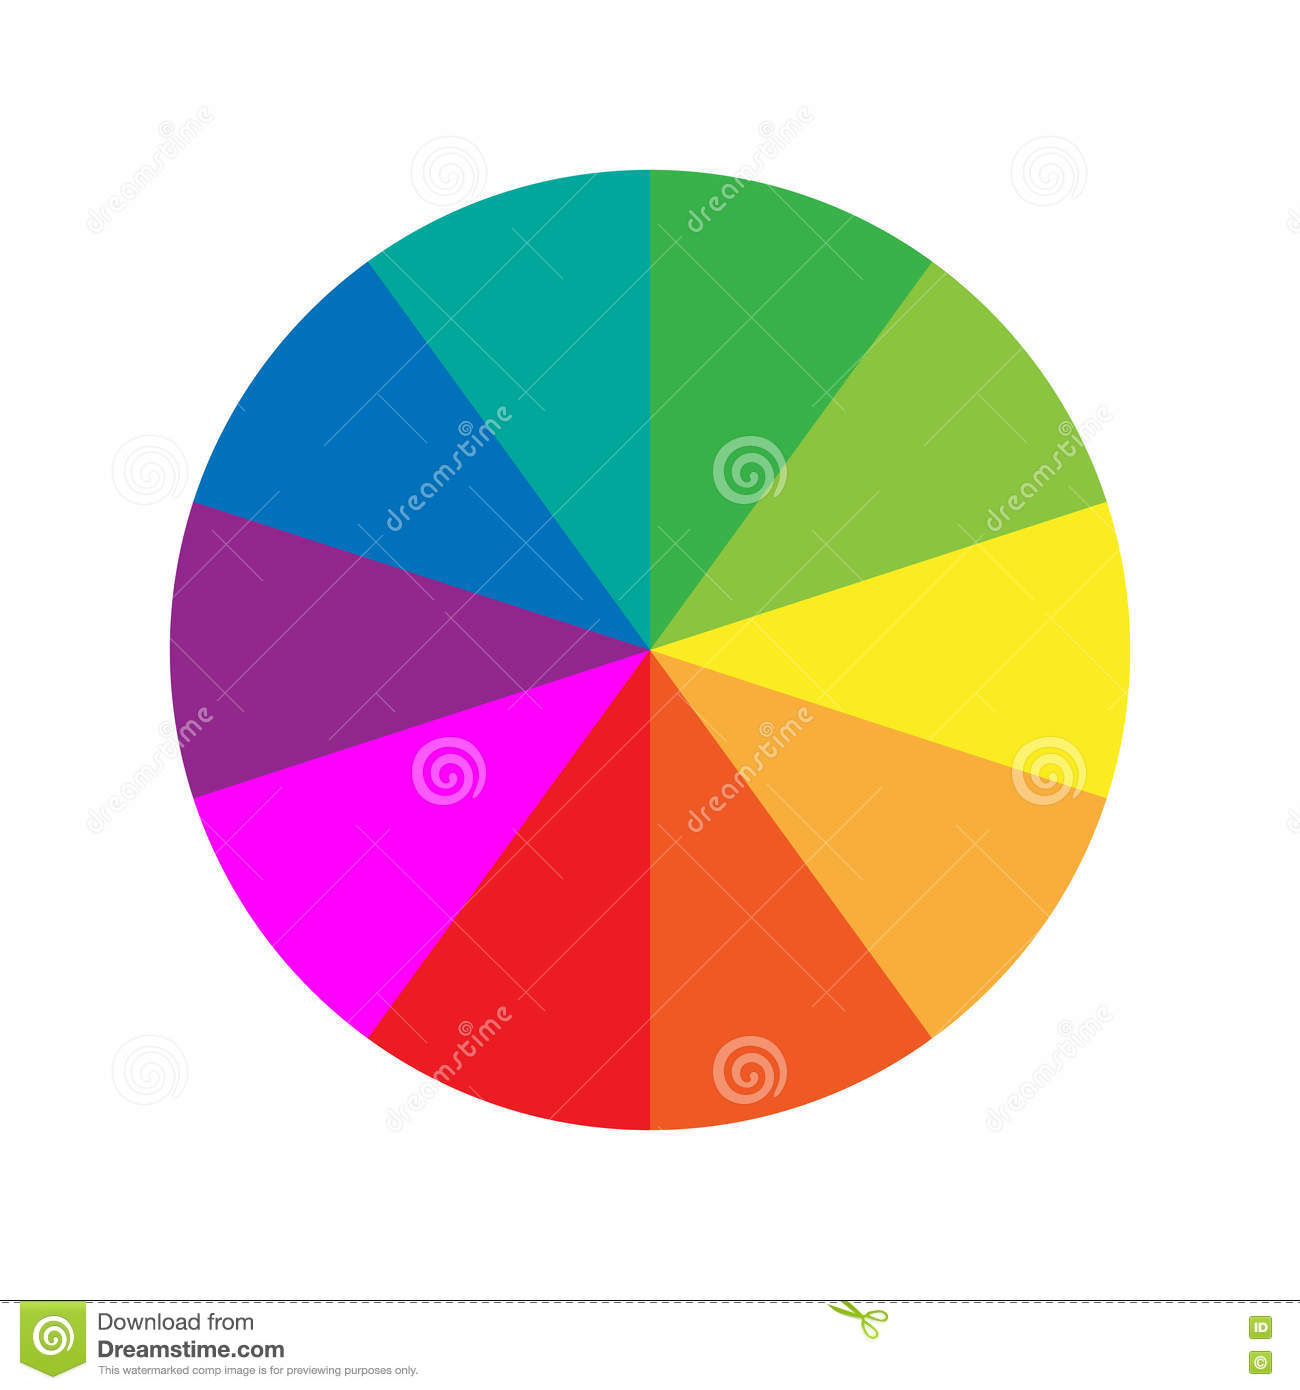 Round Color Wheel Guide Template Stock Vector - Illustration of ...